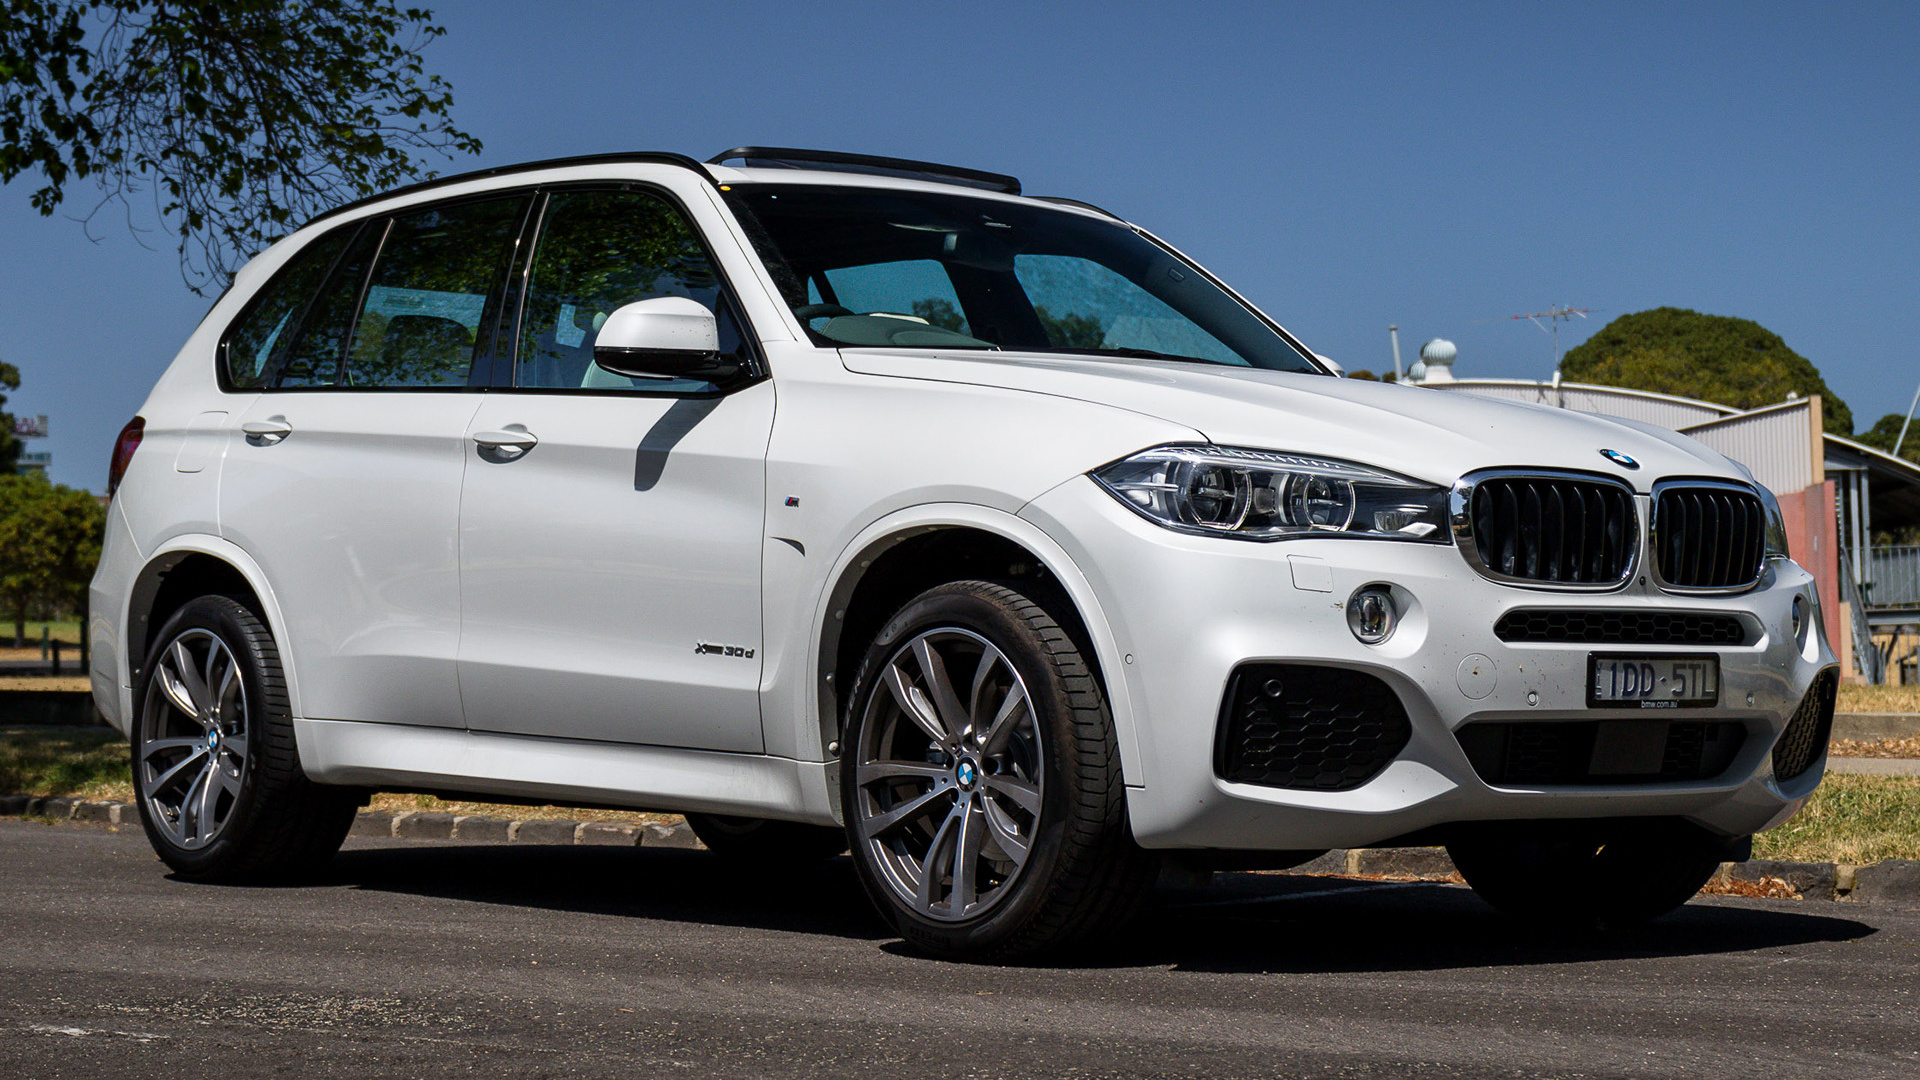 2013 Bmw X5 M Sport Au Wallpapers And Hd Images Car